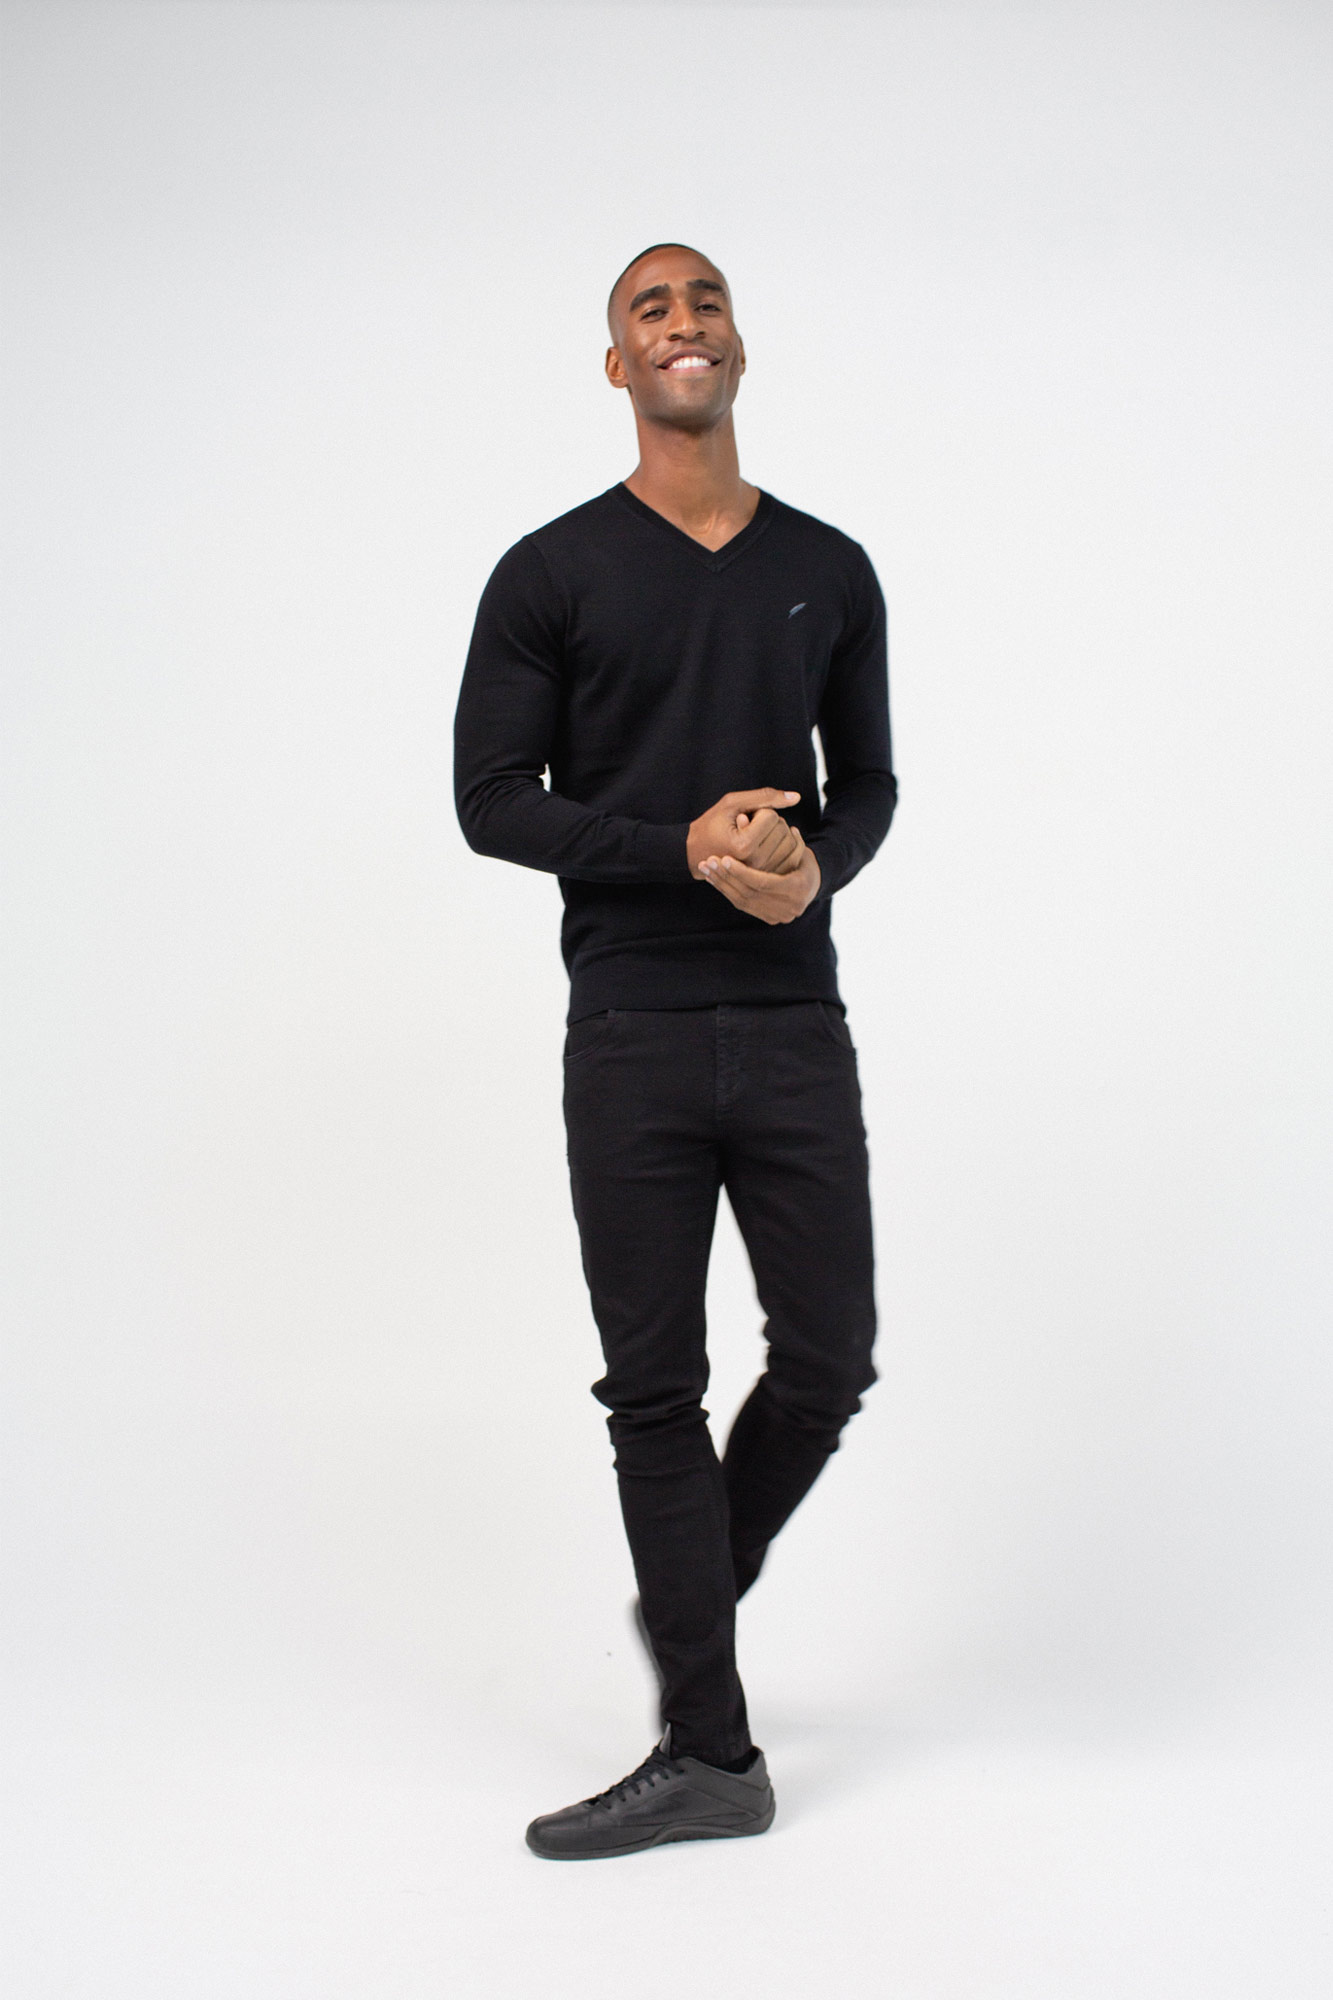 BenedictRaven Studio 0187 1 - Eton V Neck Black